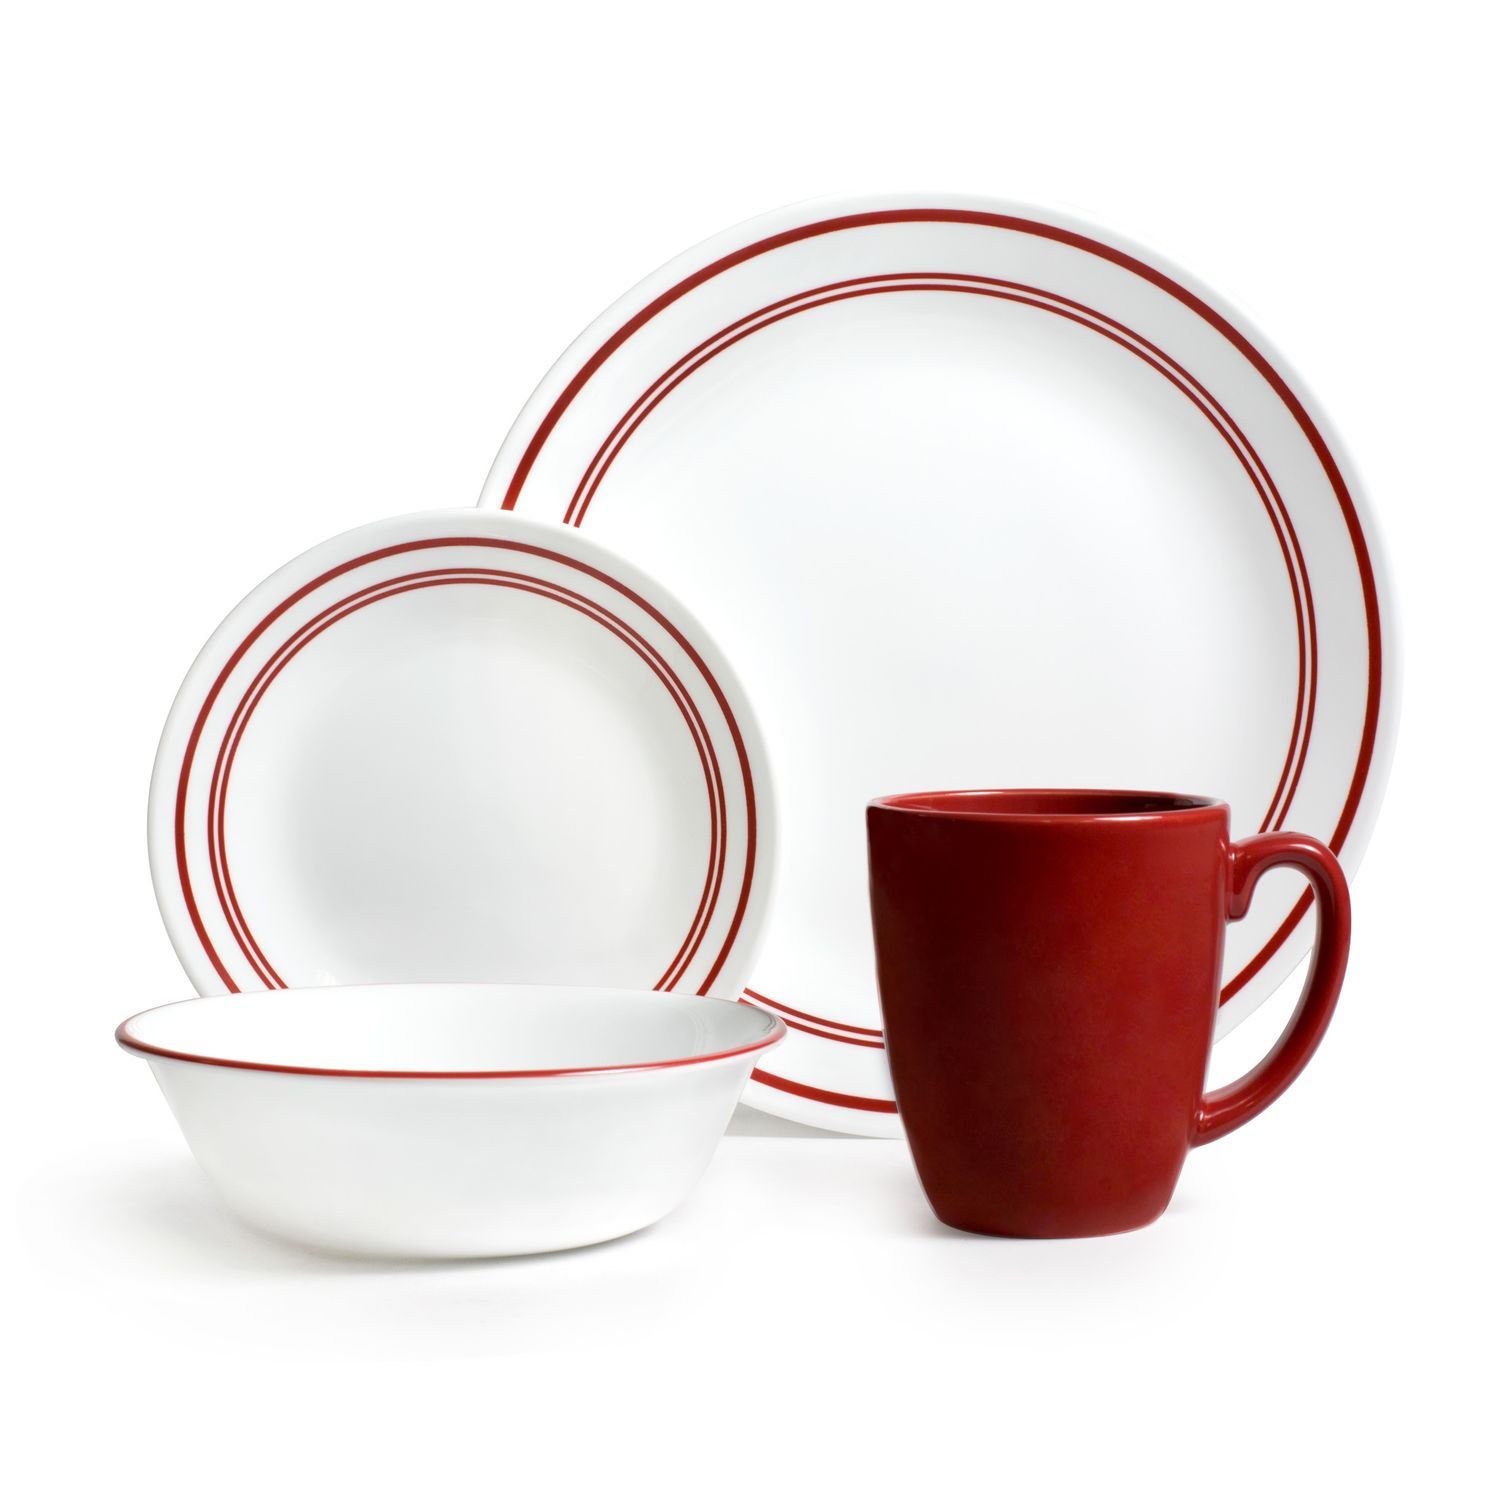 Livingware Classic Café Red 16-pc Dinnerware Set  sc 1 st  Designer Dinnerware & Livingware Classic Café Red 16-pc Dinnerware Set Review | Corelle ...